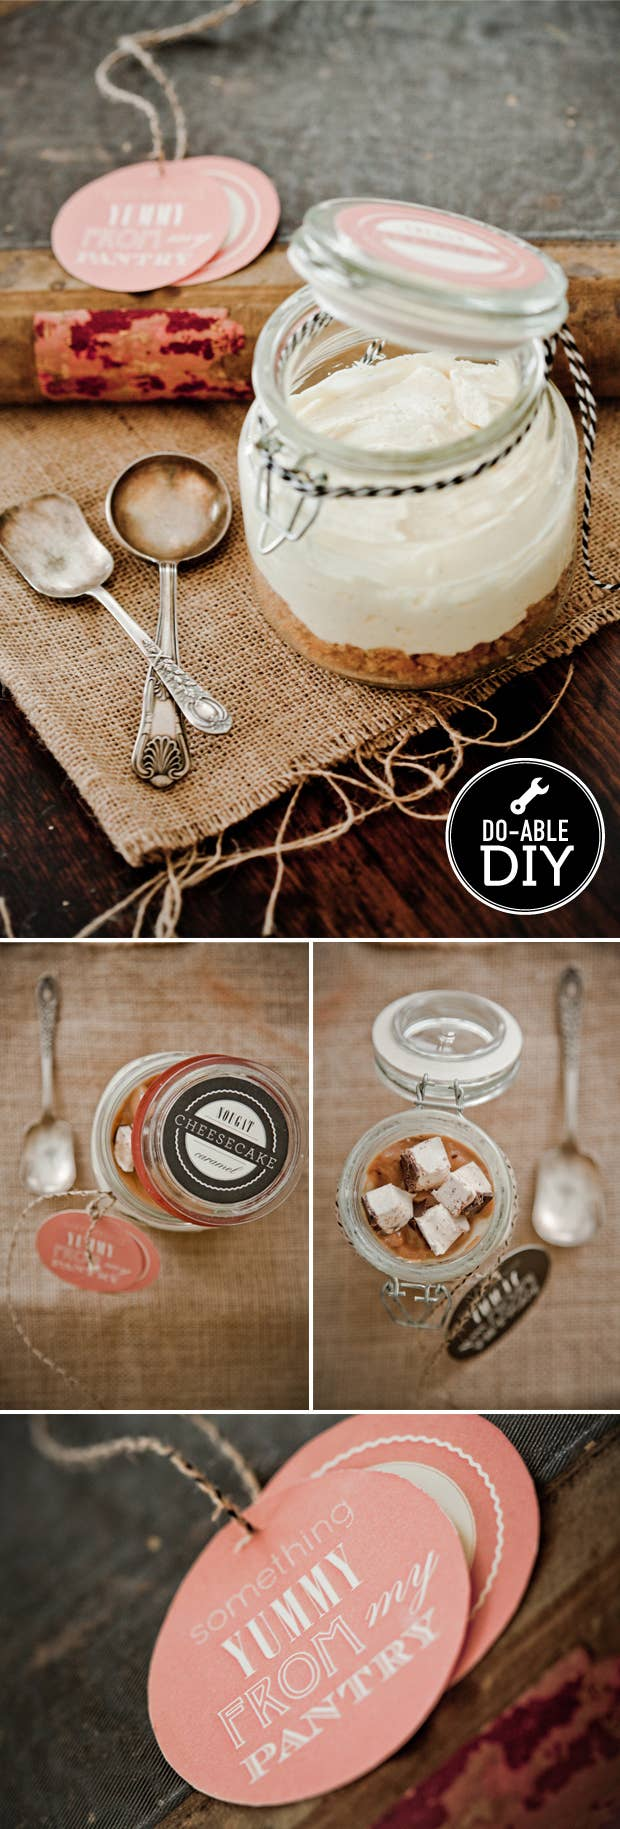 38 Best DIY Food Gifts